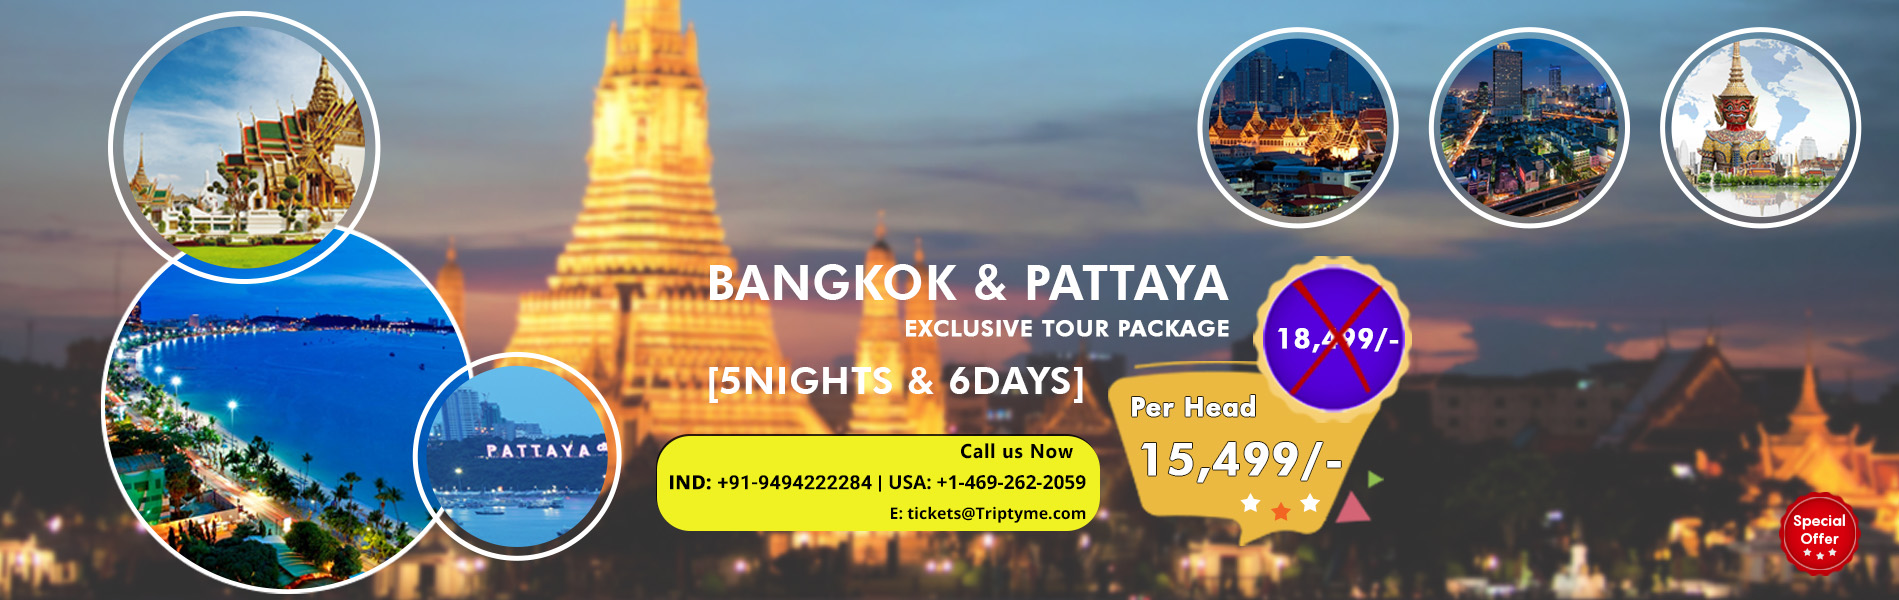 bangkok-travel-package-triptyme